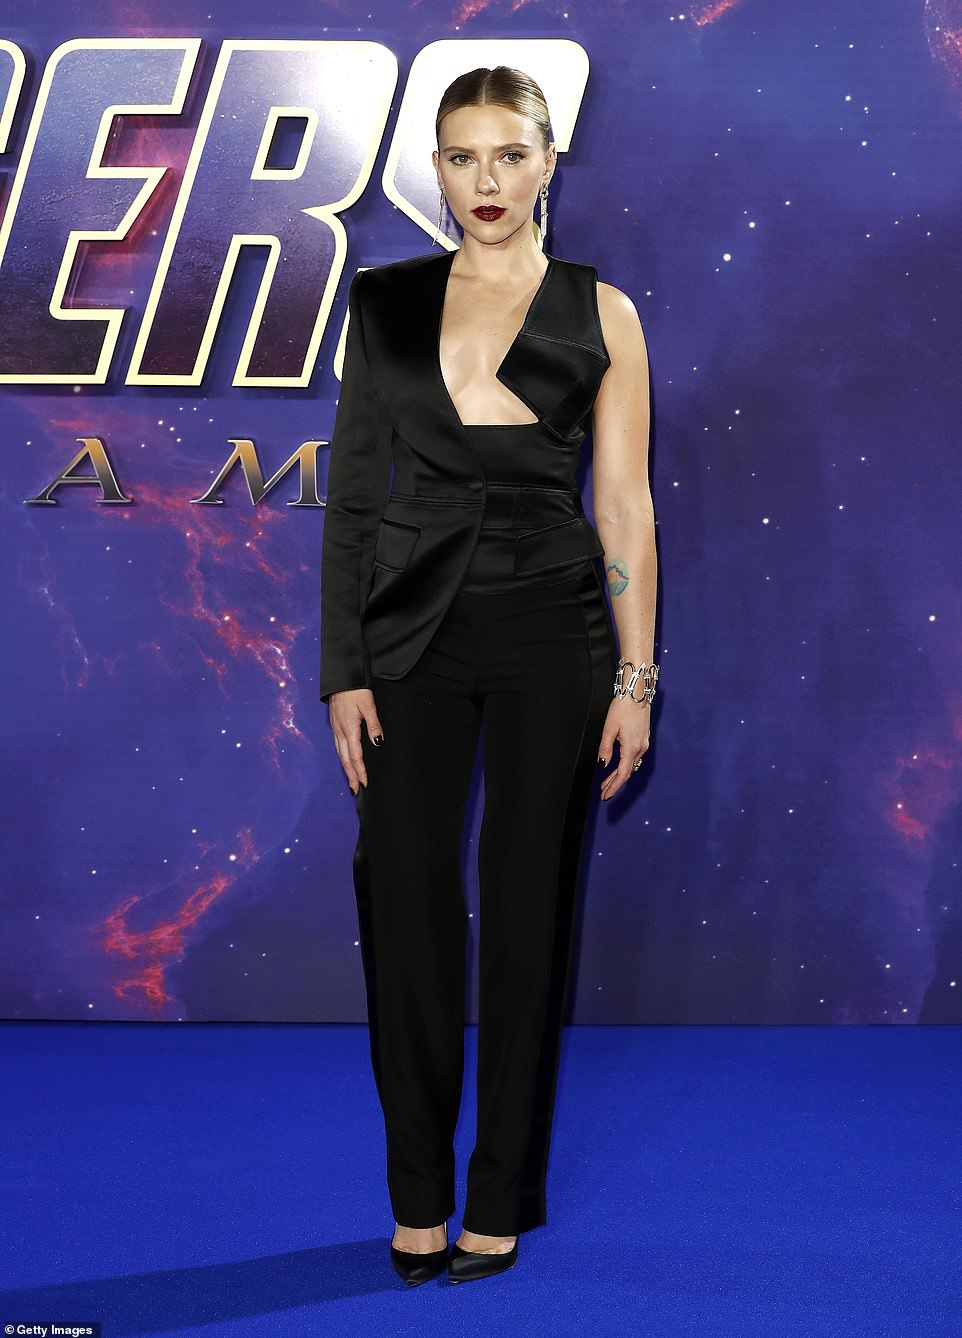 Scarlett Johansson goes daring at the Avengers: Endgame event in London